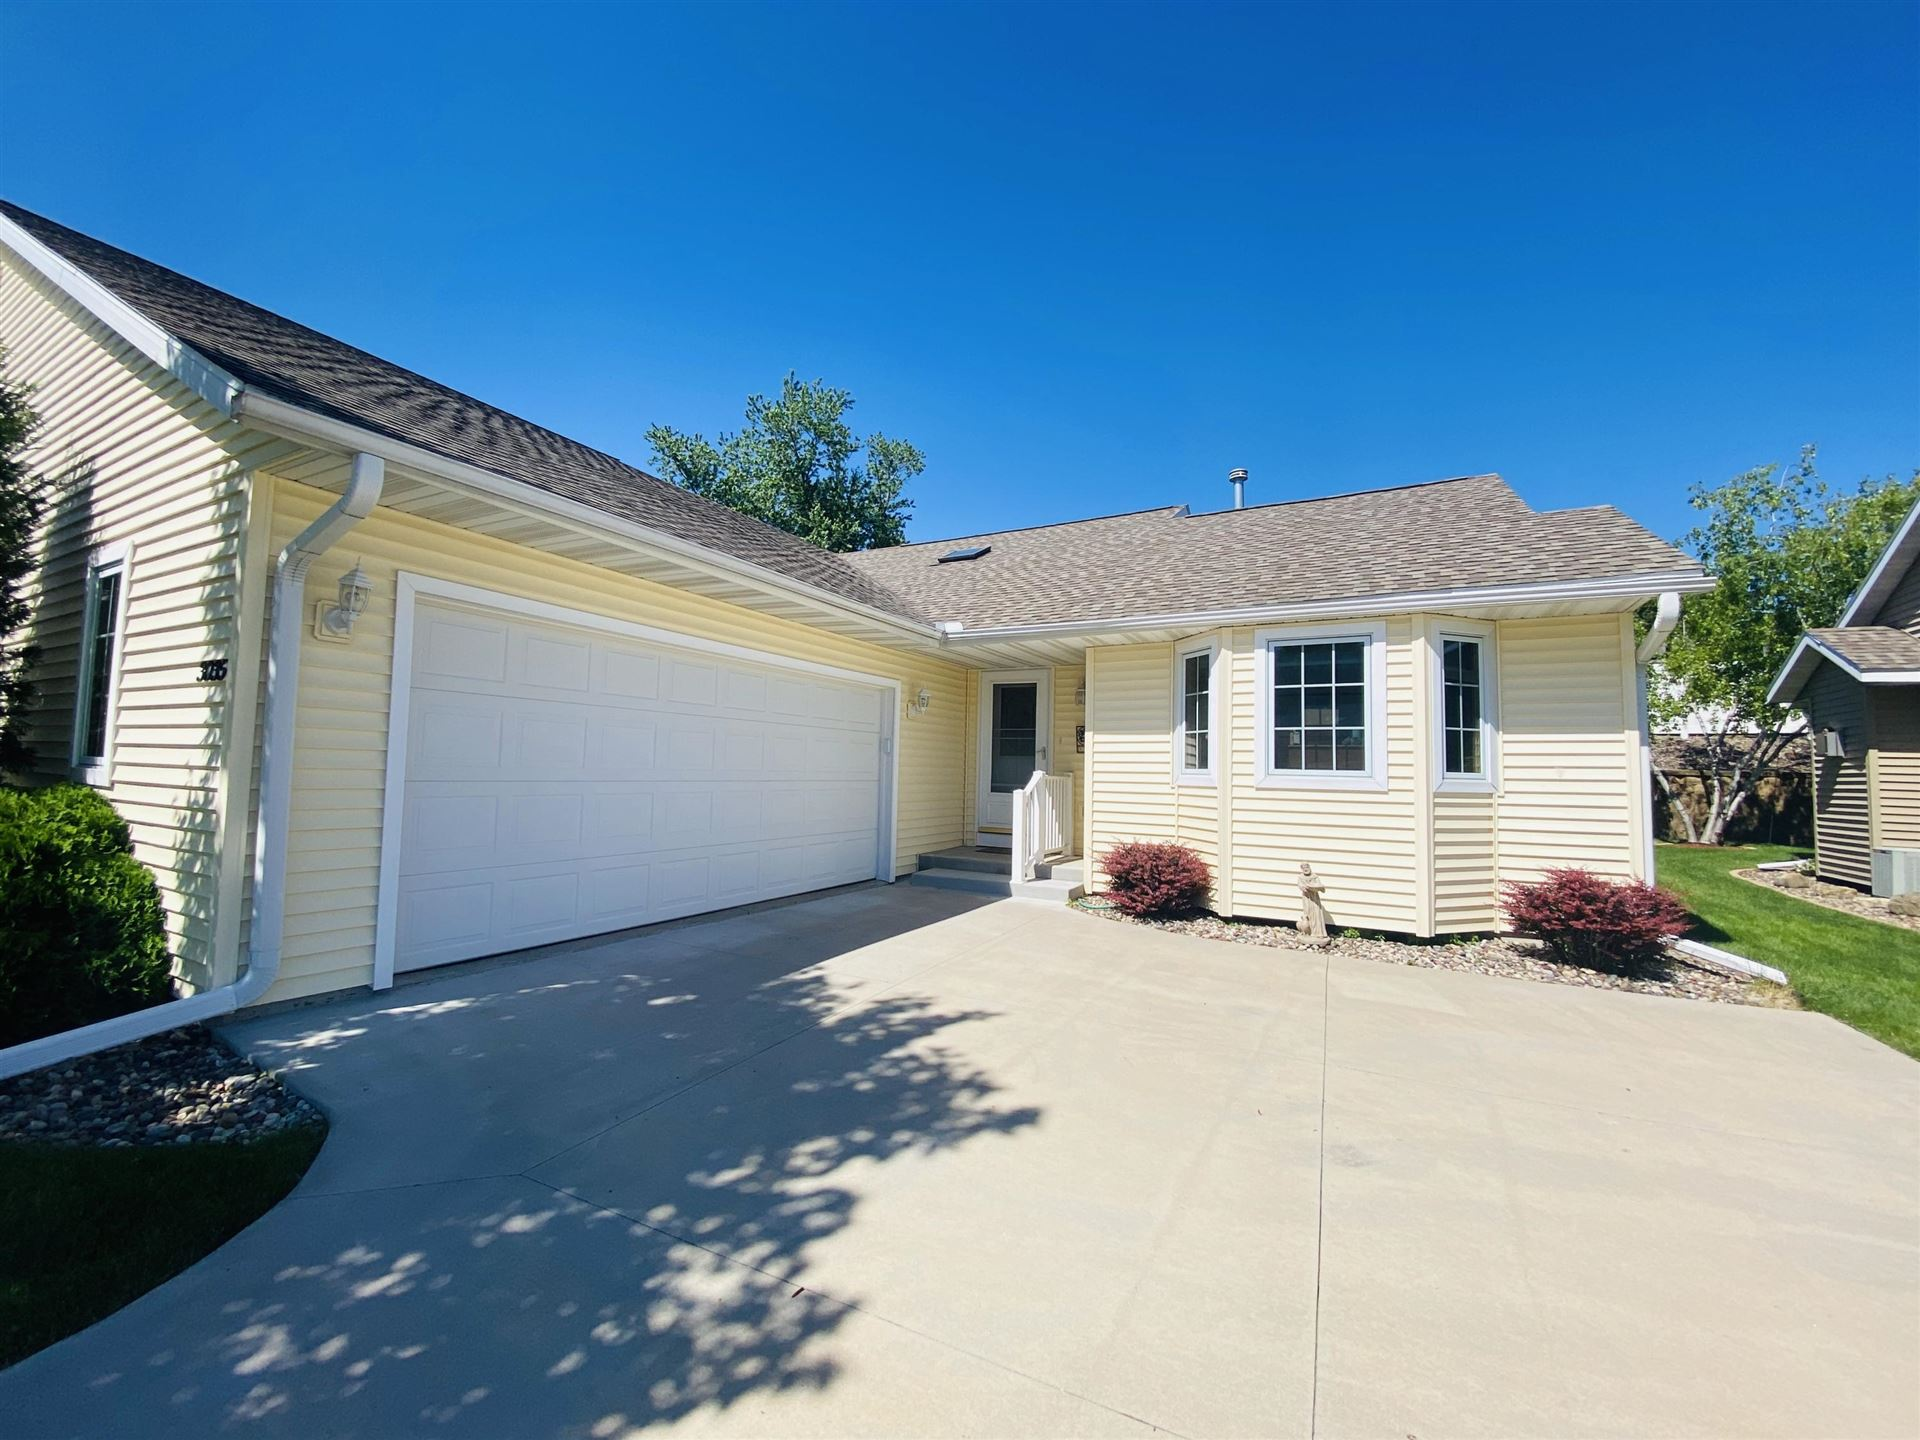 3035 Lakota Pl, La Crosse, WI 54601 - MLS#: 1692753